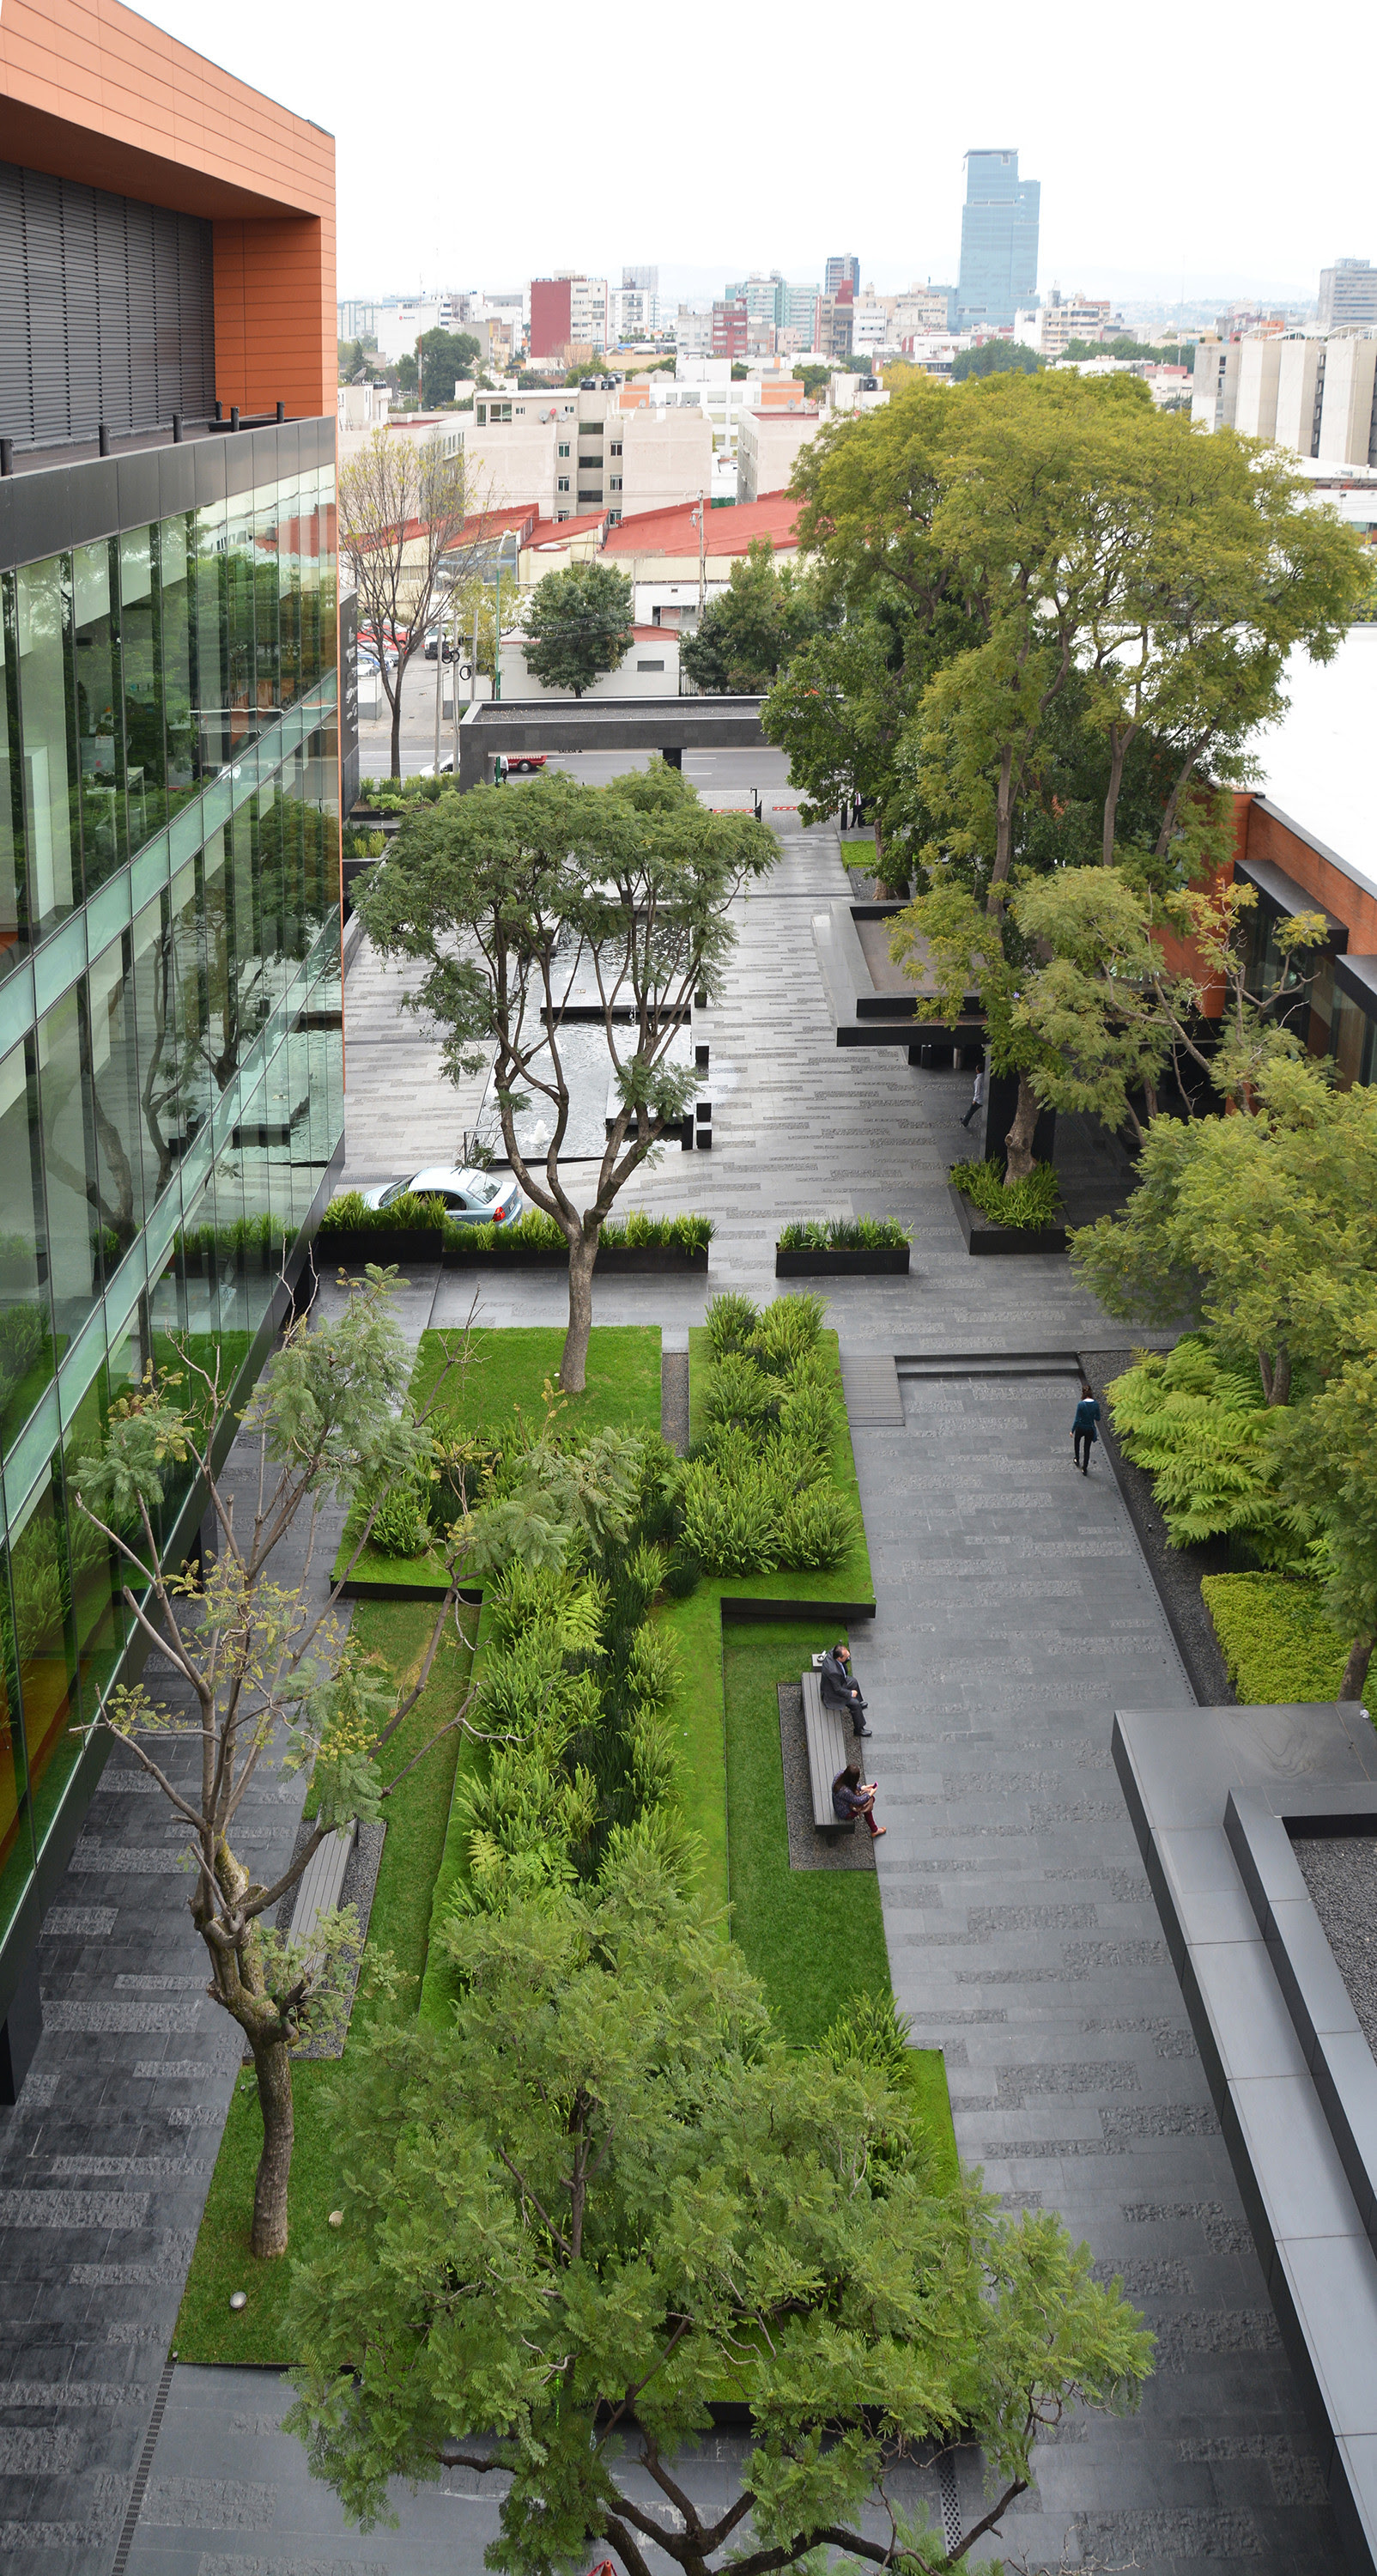 dlc_coyoacan_corporate_campus_01_daylight_112913